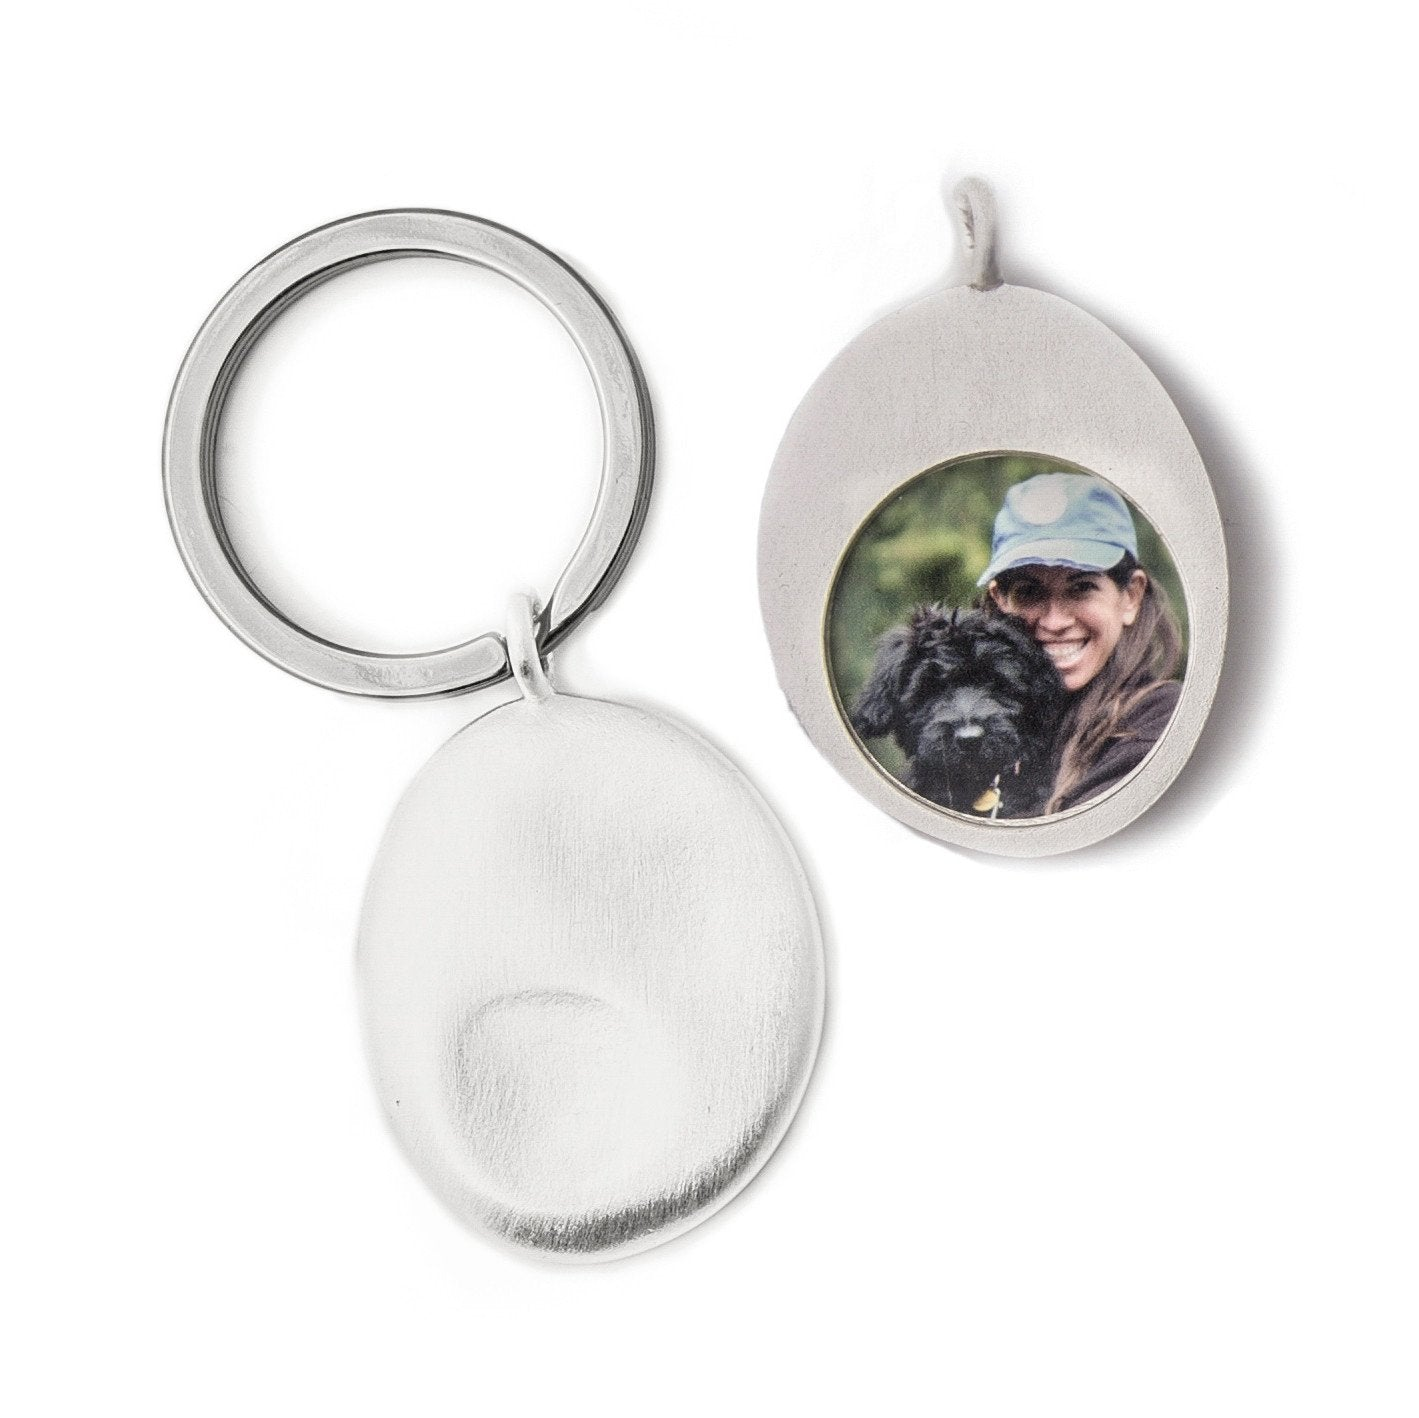 Personalized Worry Stone Keyring - Large